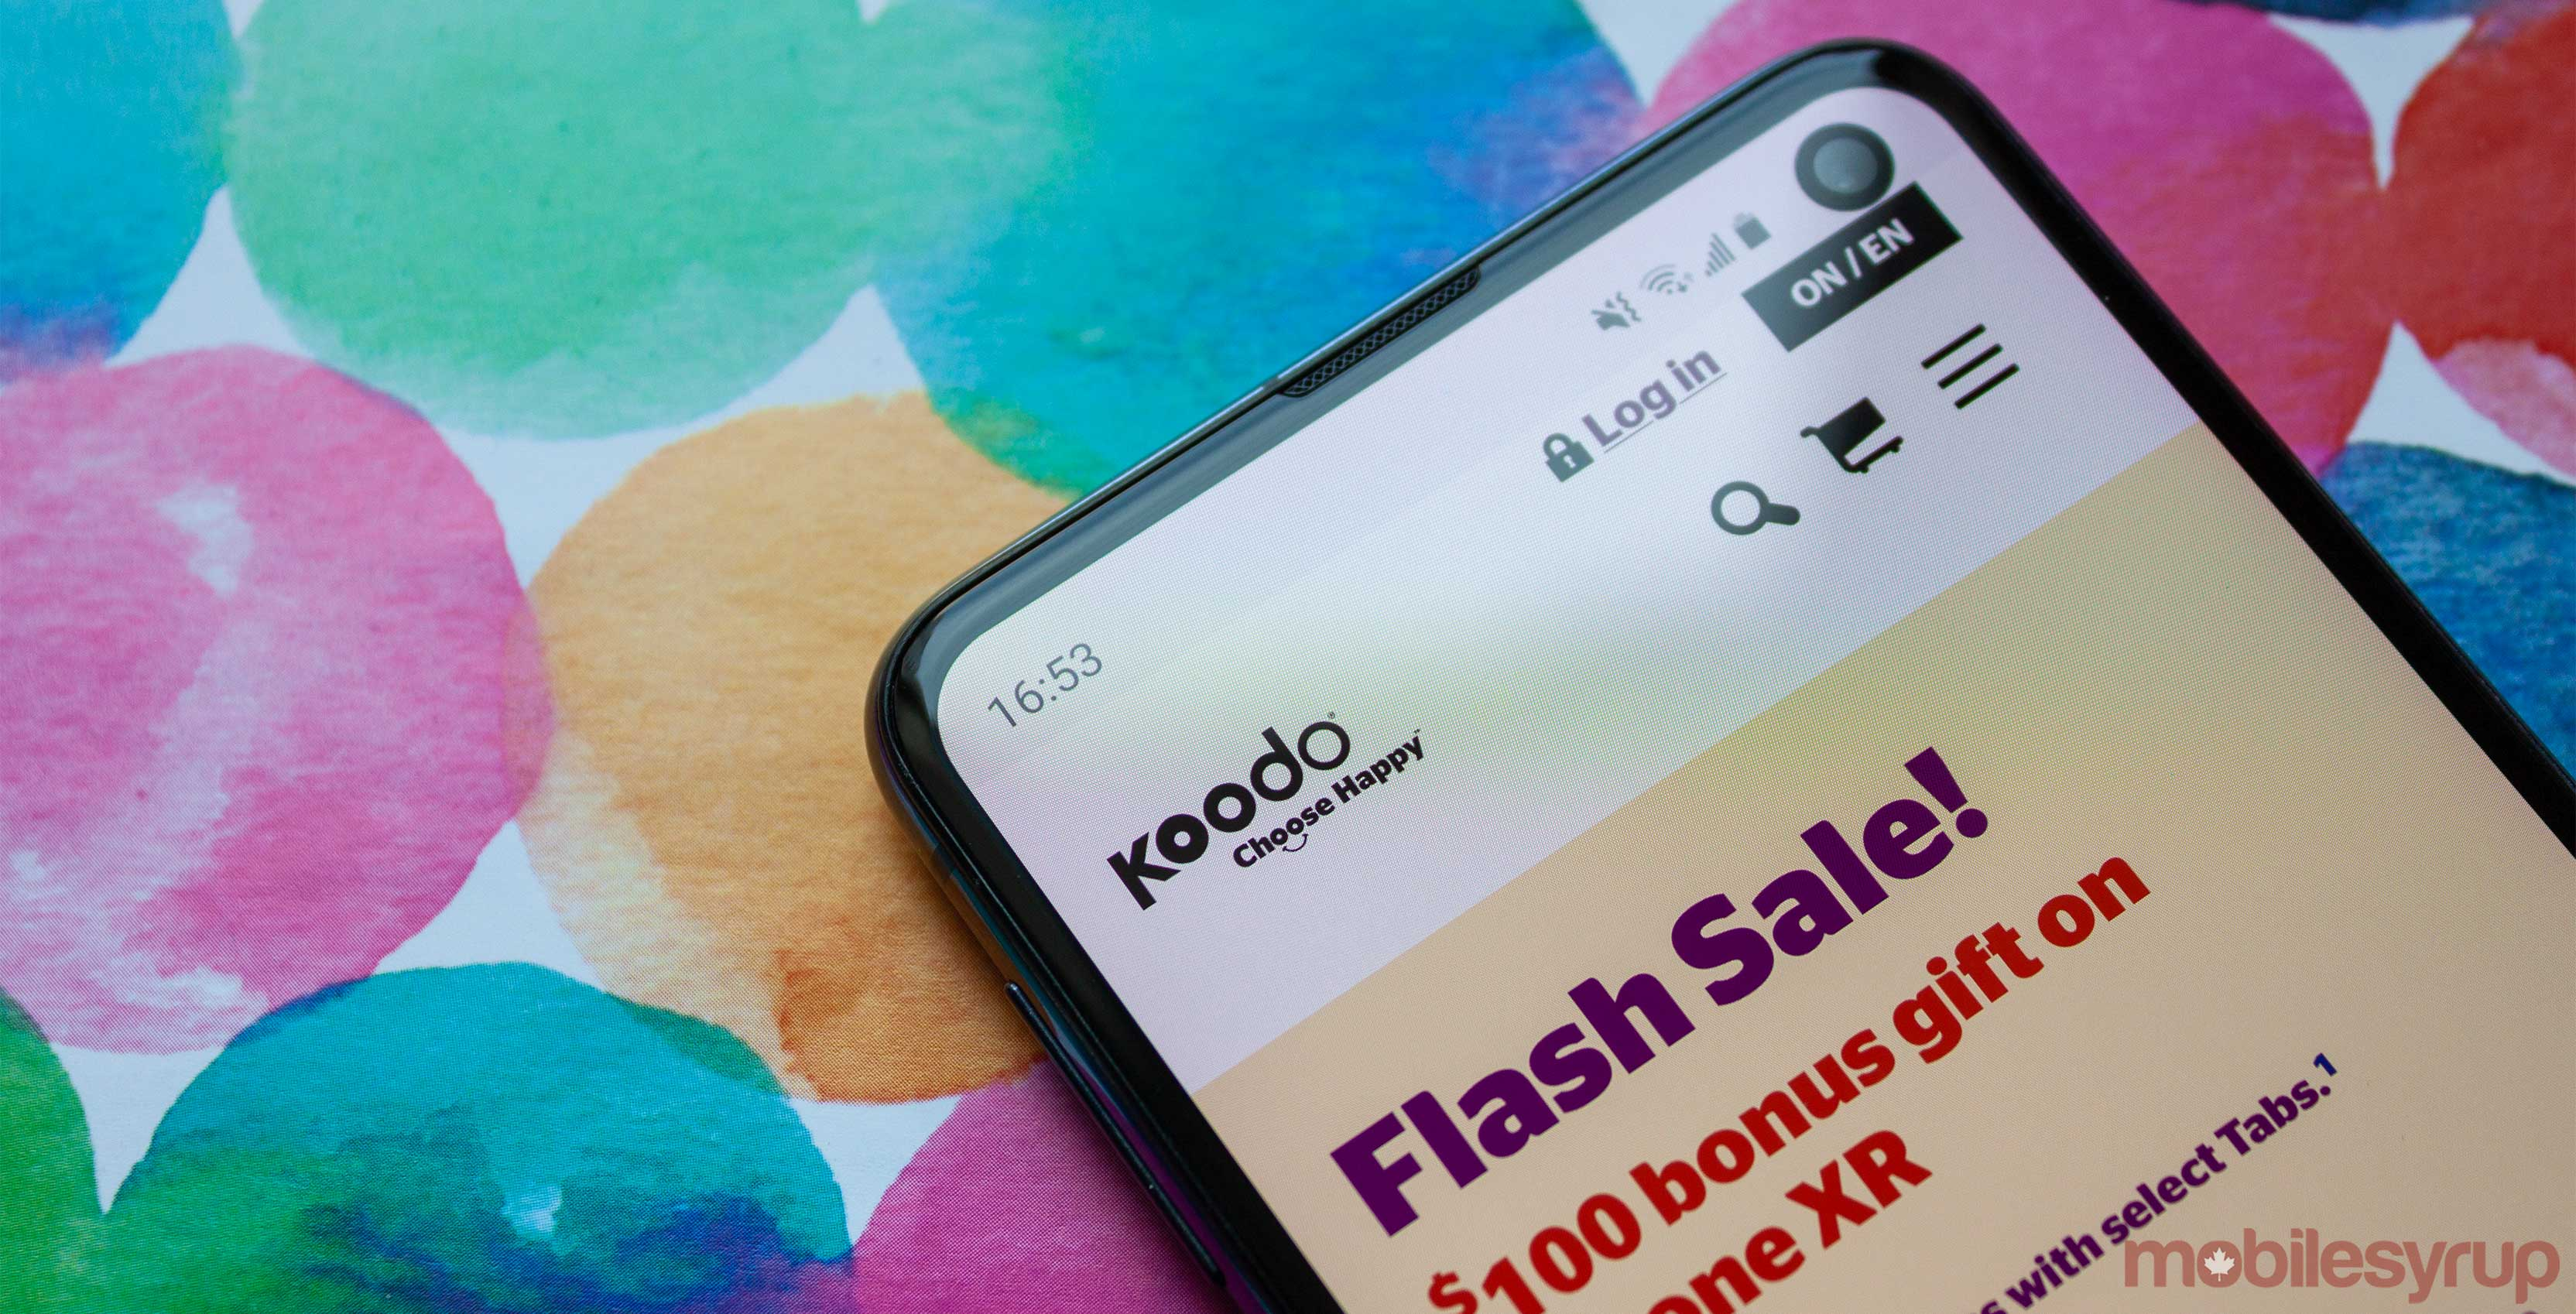 Koodo charges 'phone credit' and remaining Tab balance if